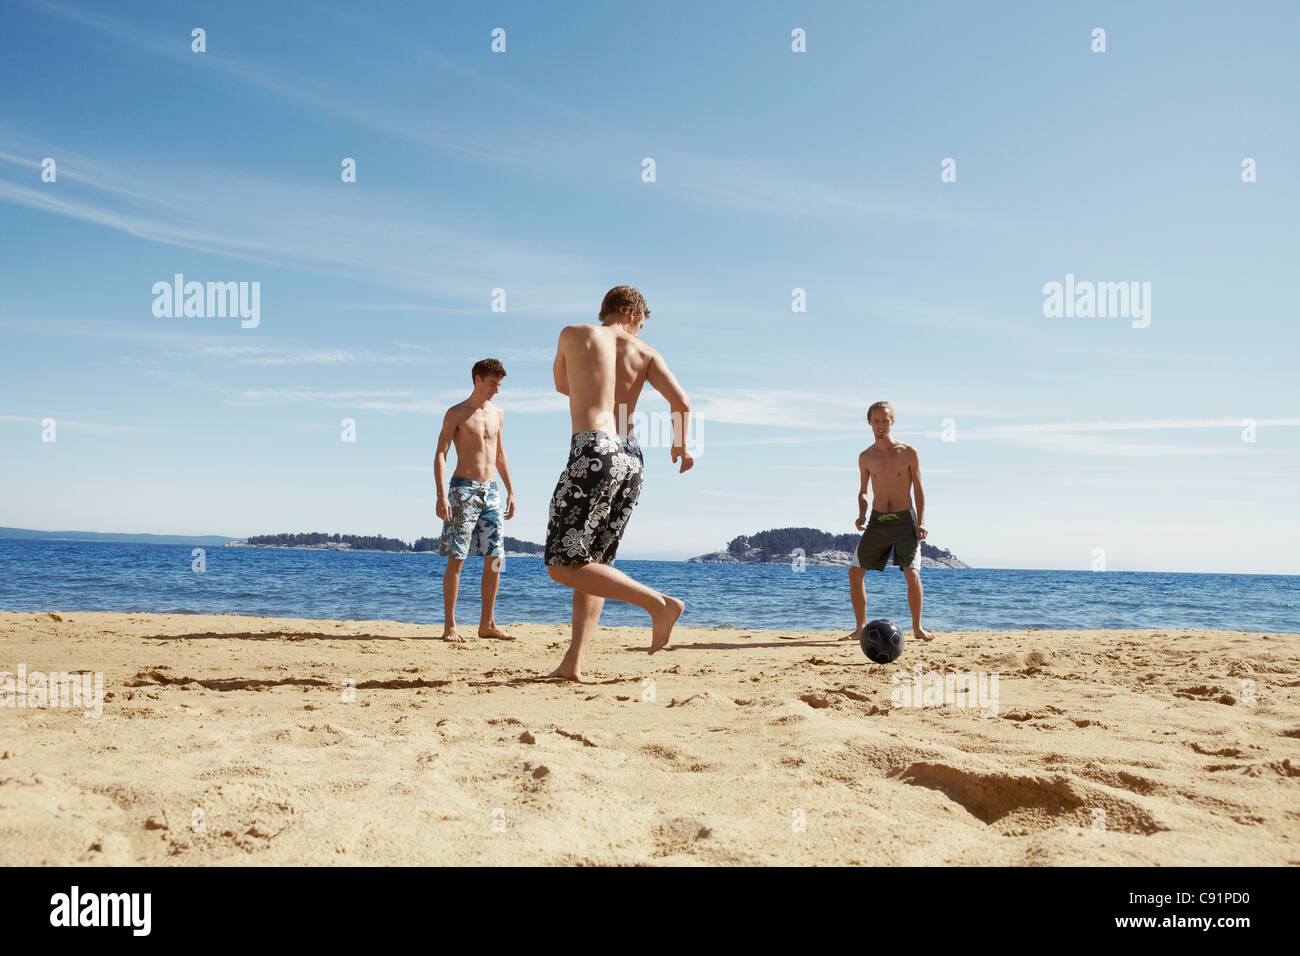 Men playing soccer on beach - Stock Image